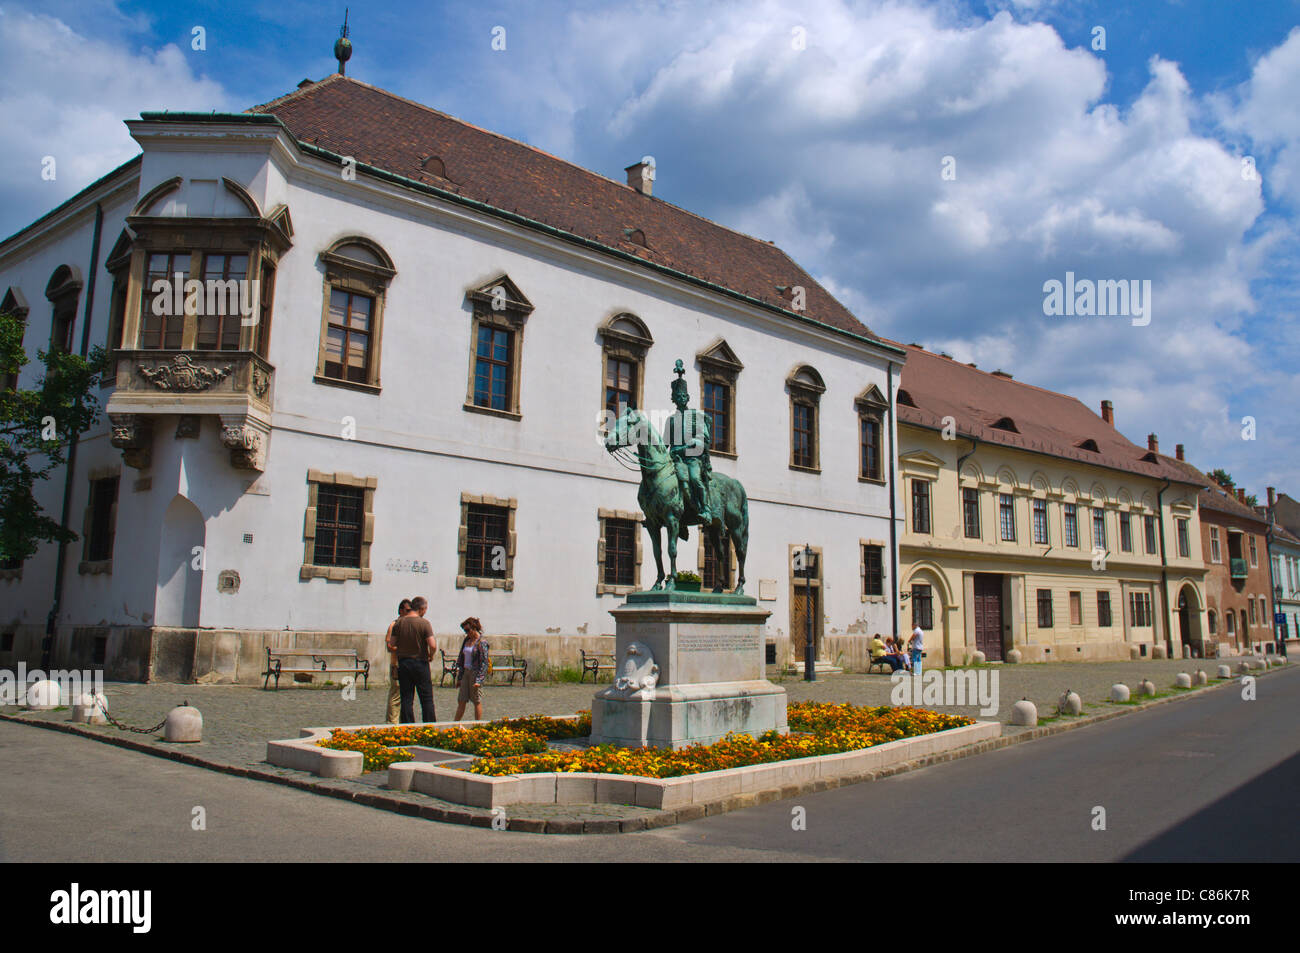 Uni utca street with statue of Andras Hadik 18th century Hungarian count Varhegy the Buda Castle Hill Budapest Hungary - Stock Image